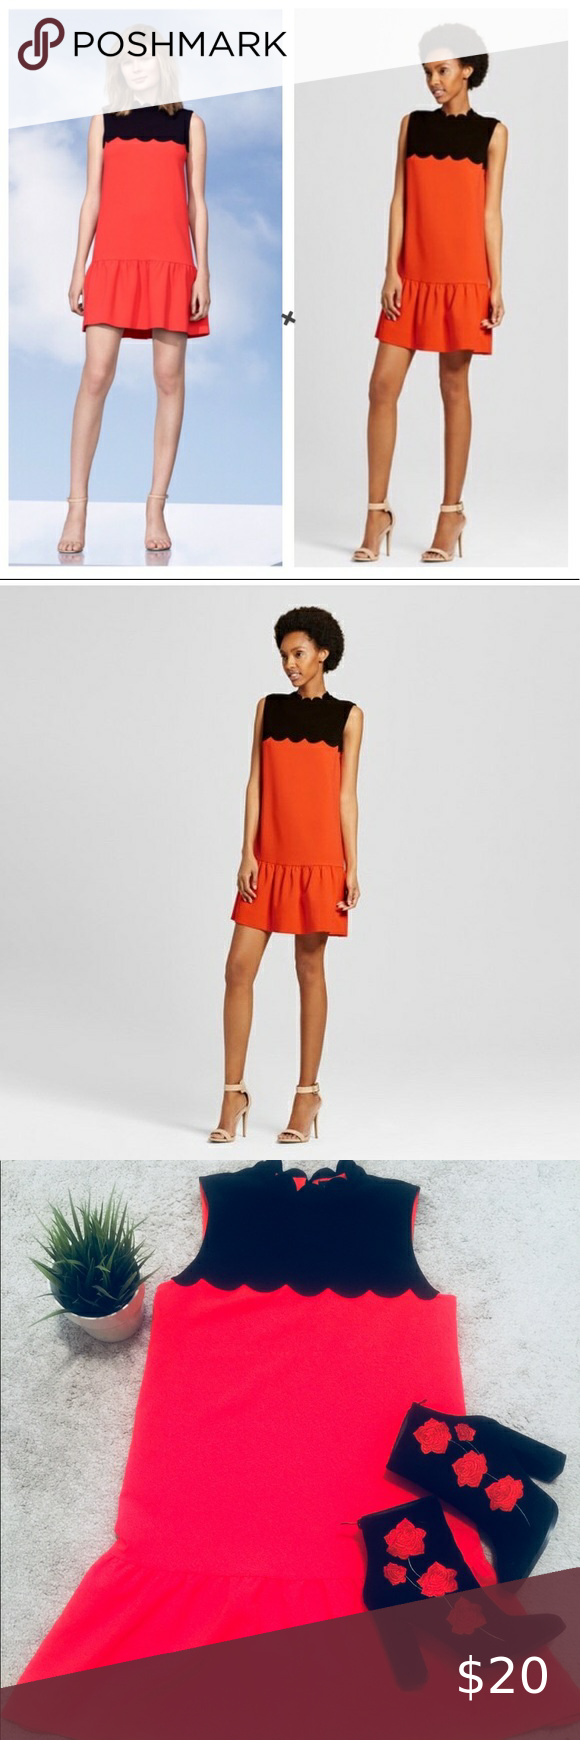 Victoria Beckham For Target Scalloped Red Dress Victoria Beckham Target Red Dress Flounce Hem Dress [ 1740 x 580 Pixel ]